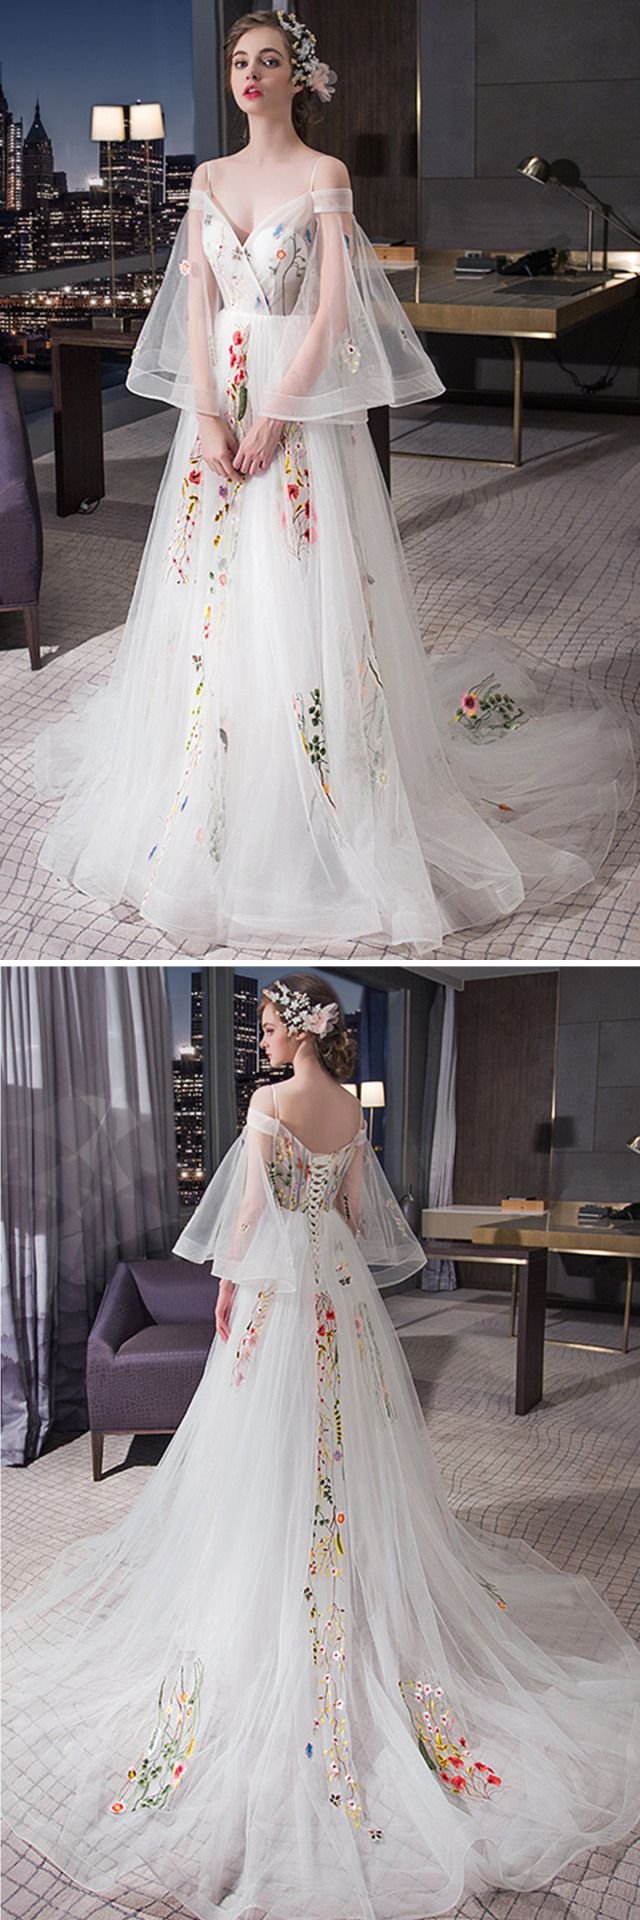 Beautiful white tulle off shoulder prom gown wedding dress wedding